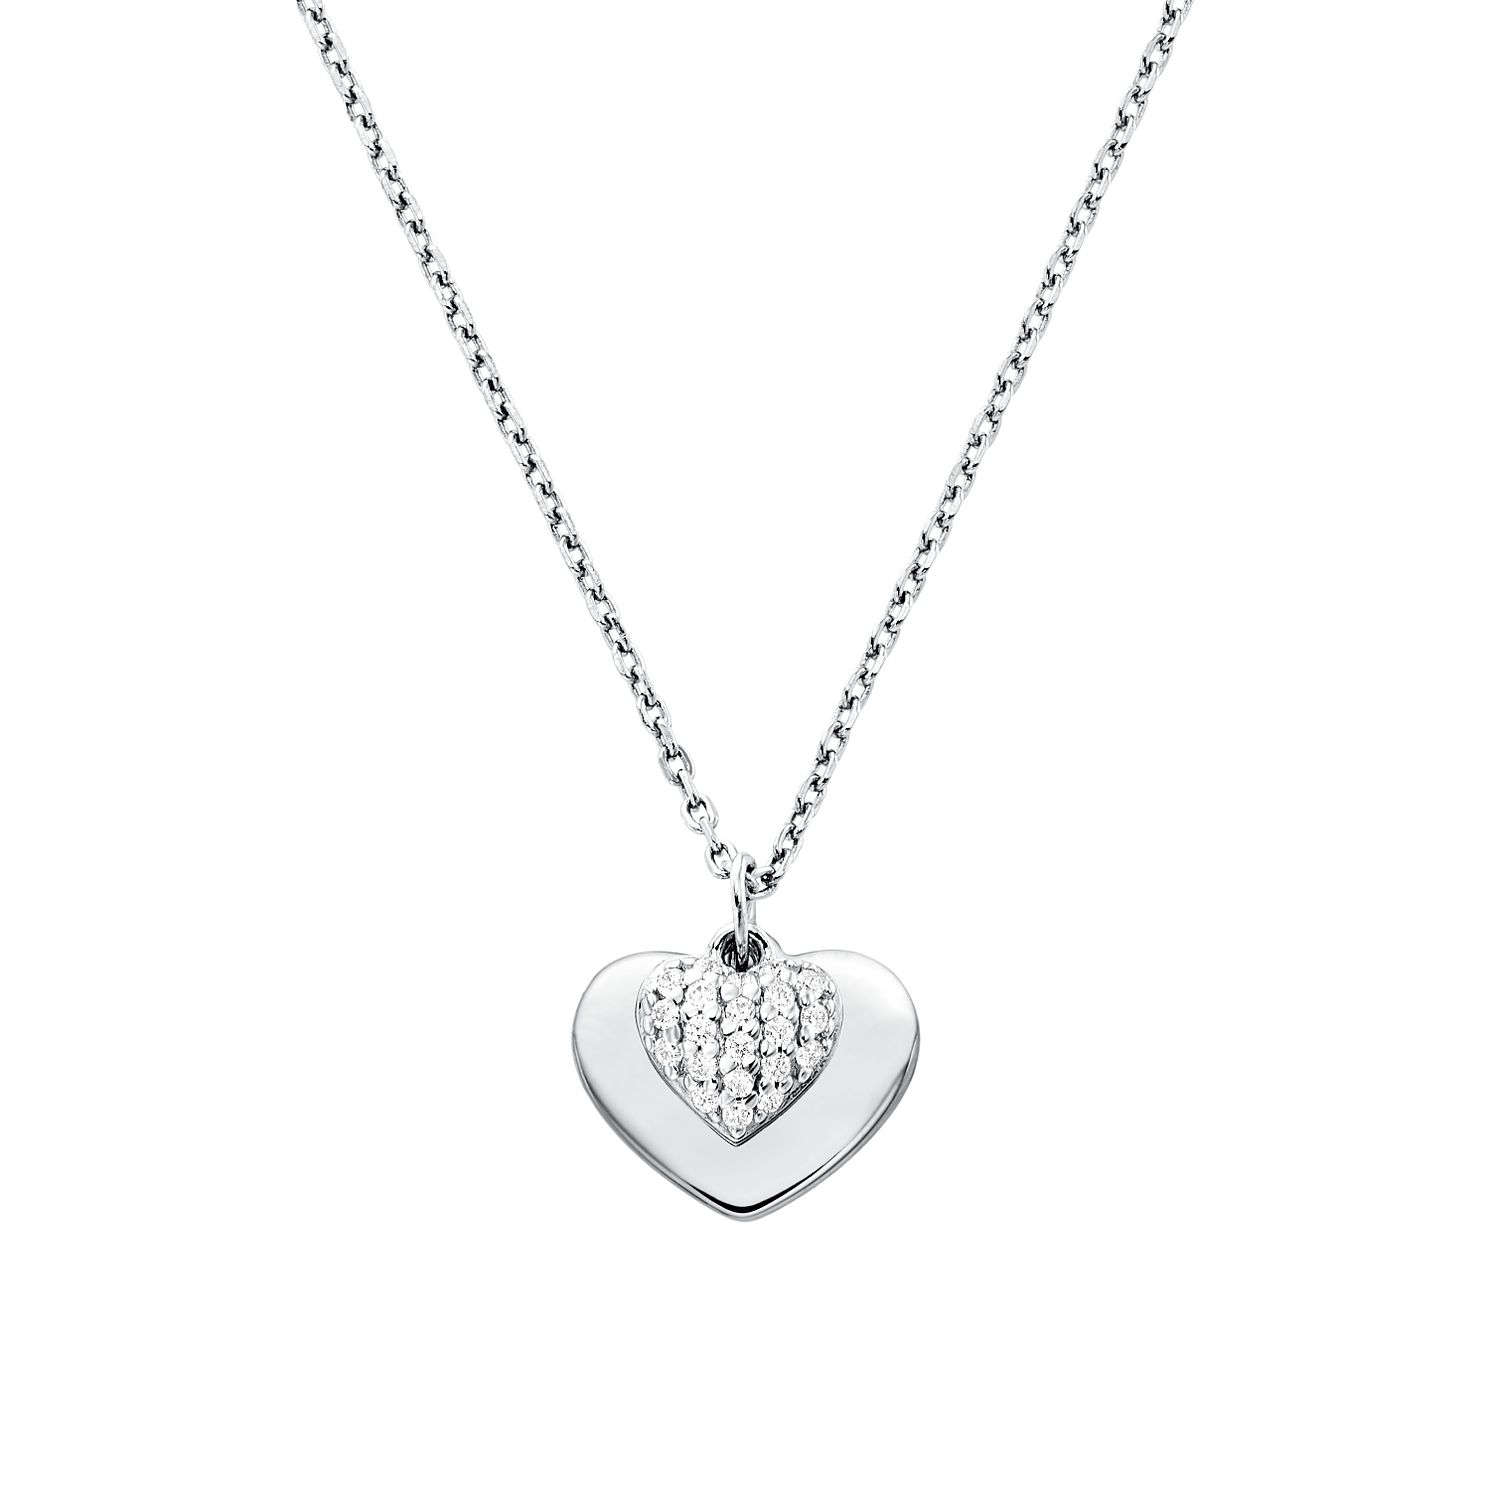 Michael Kors Sterling Silver Kors Love Heart Pendant - Product number 9800956